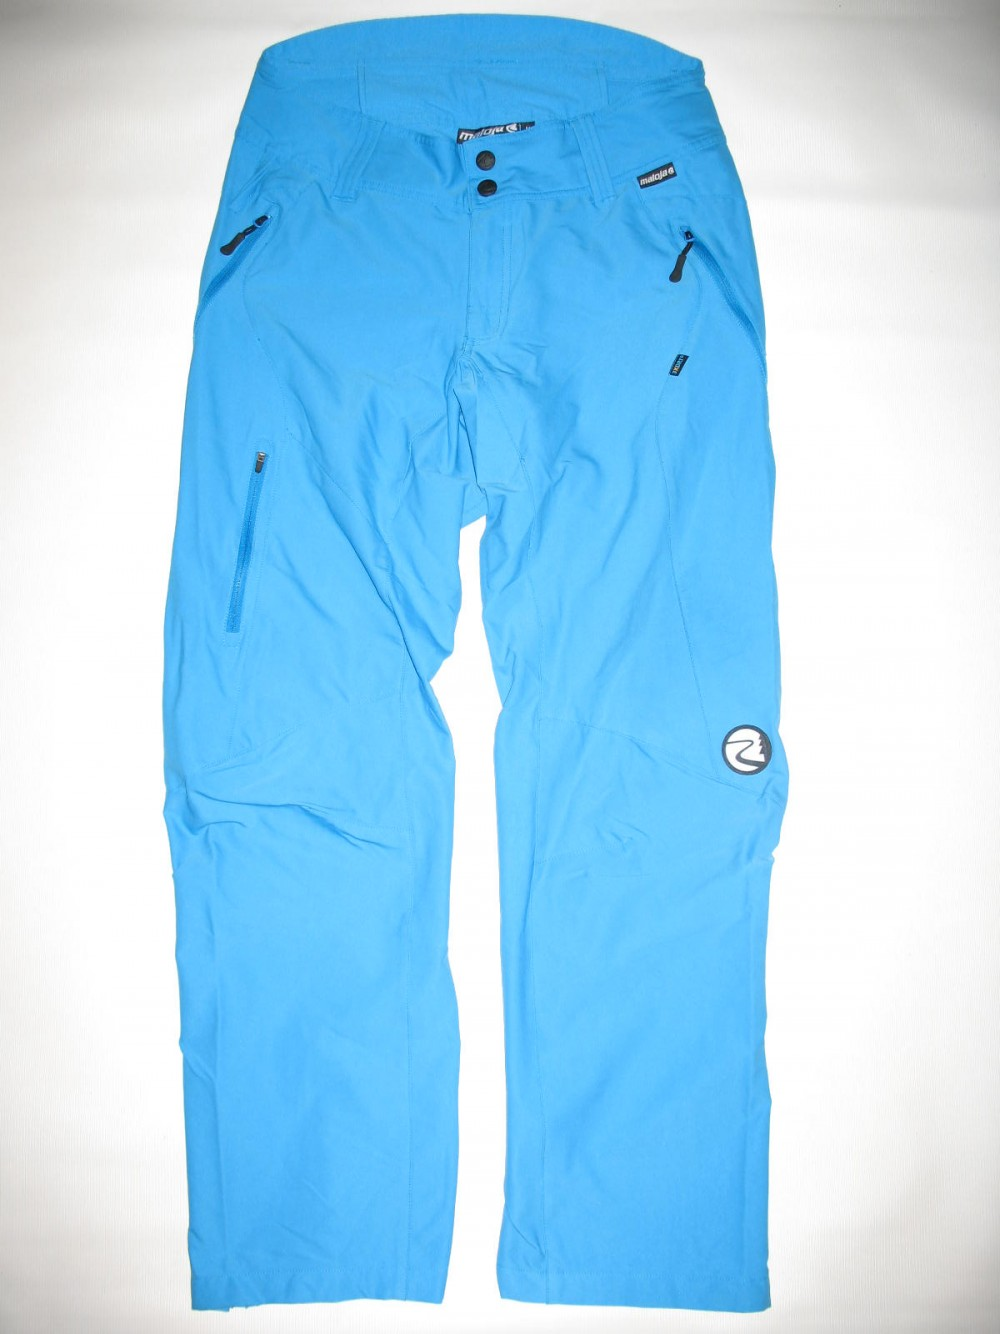 Велоштаны MALOJA 3xdry bike pants (размер M) - 1